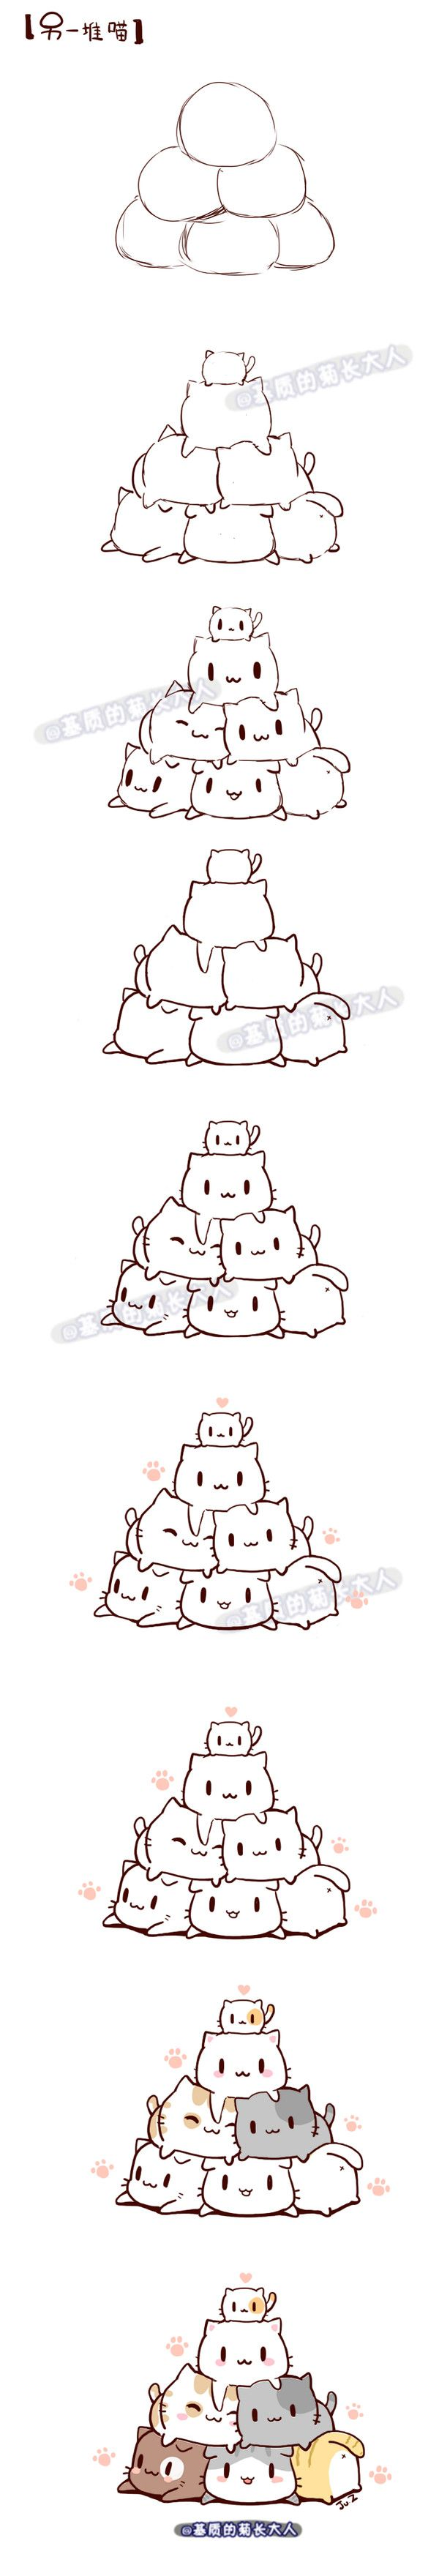 I Want A Cat Or Many Cats :3 · How To Draw